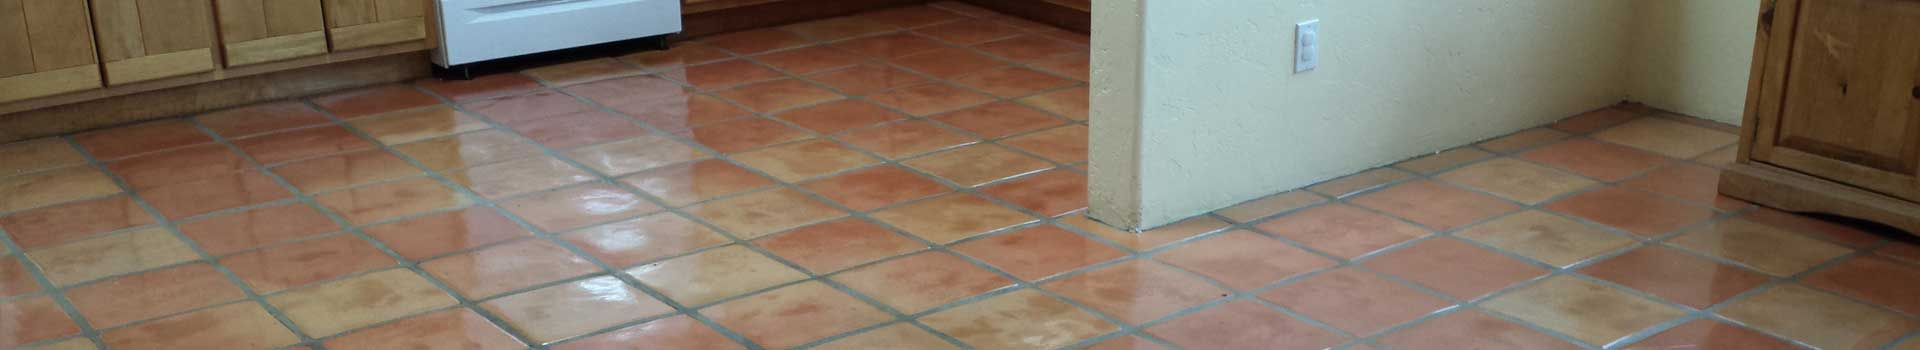 saltillo tile and floor cleaning